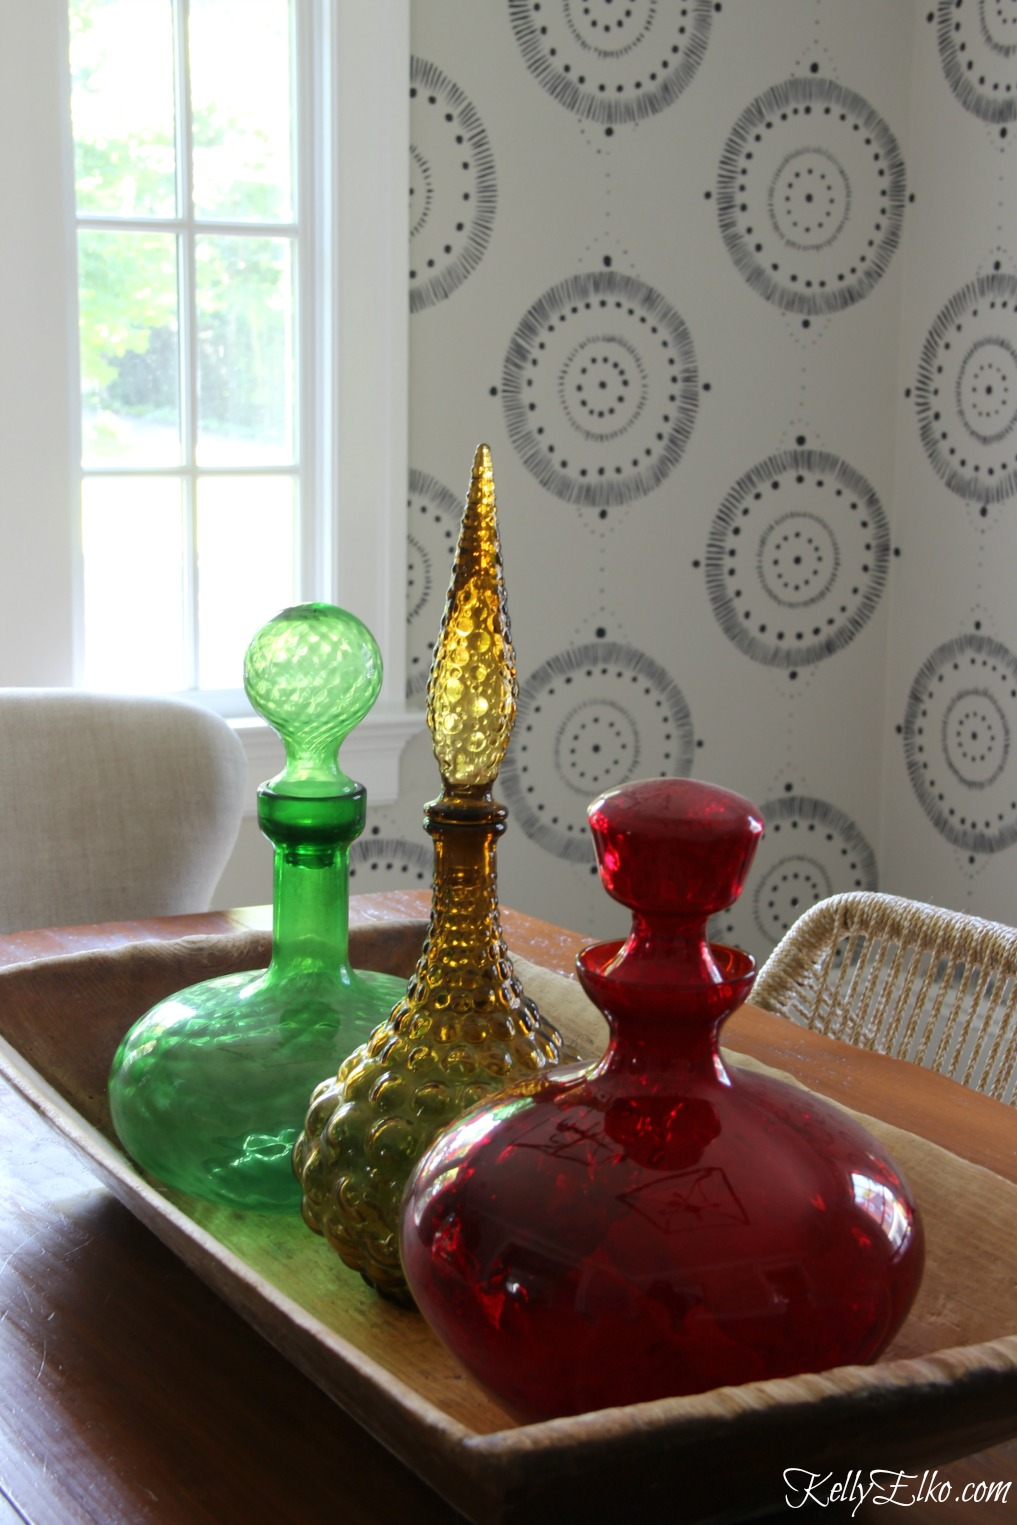 Forget wallpaper! This hand painted mural is like faux wallpaper minus the expense and I love the mid century decanters in an old dough bowl kellyelko.com #wallpaper #mural #diningroom #wallart #handpainted